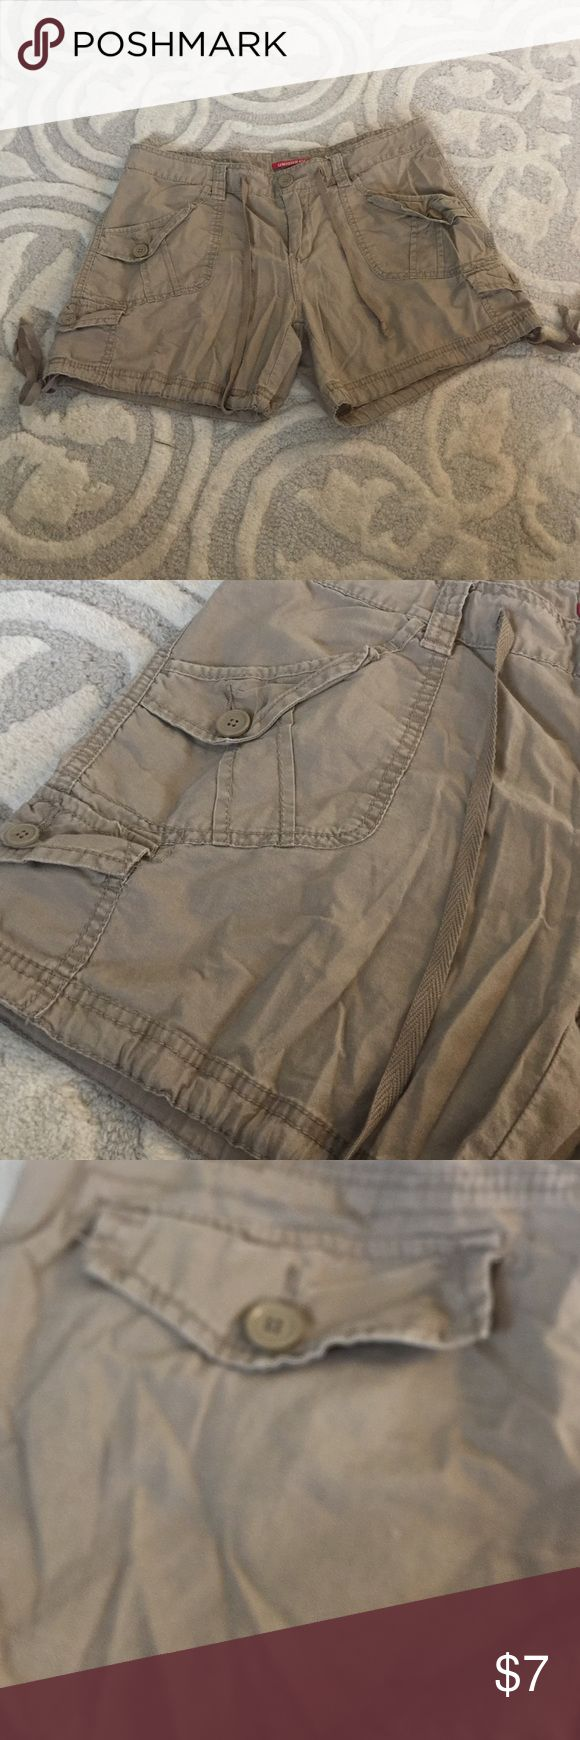 Size 11.  Unionbay.  Shorts Great condition.  Juniors shorts.  Size 11 UNIONBAY Shorts